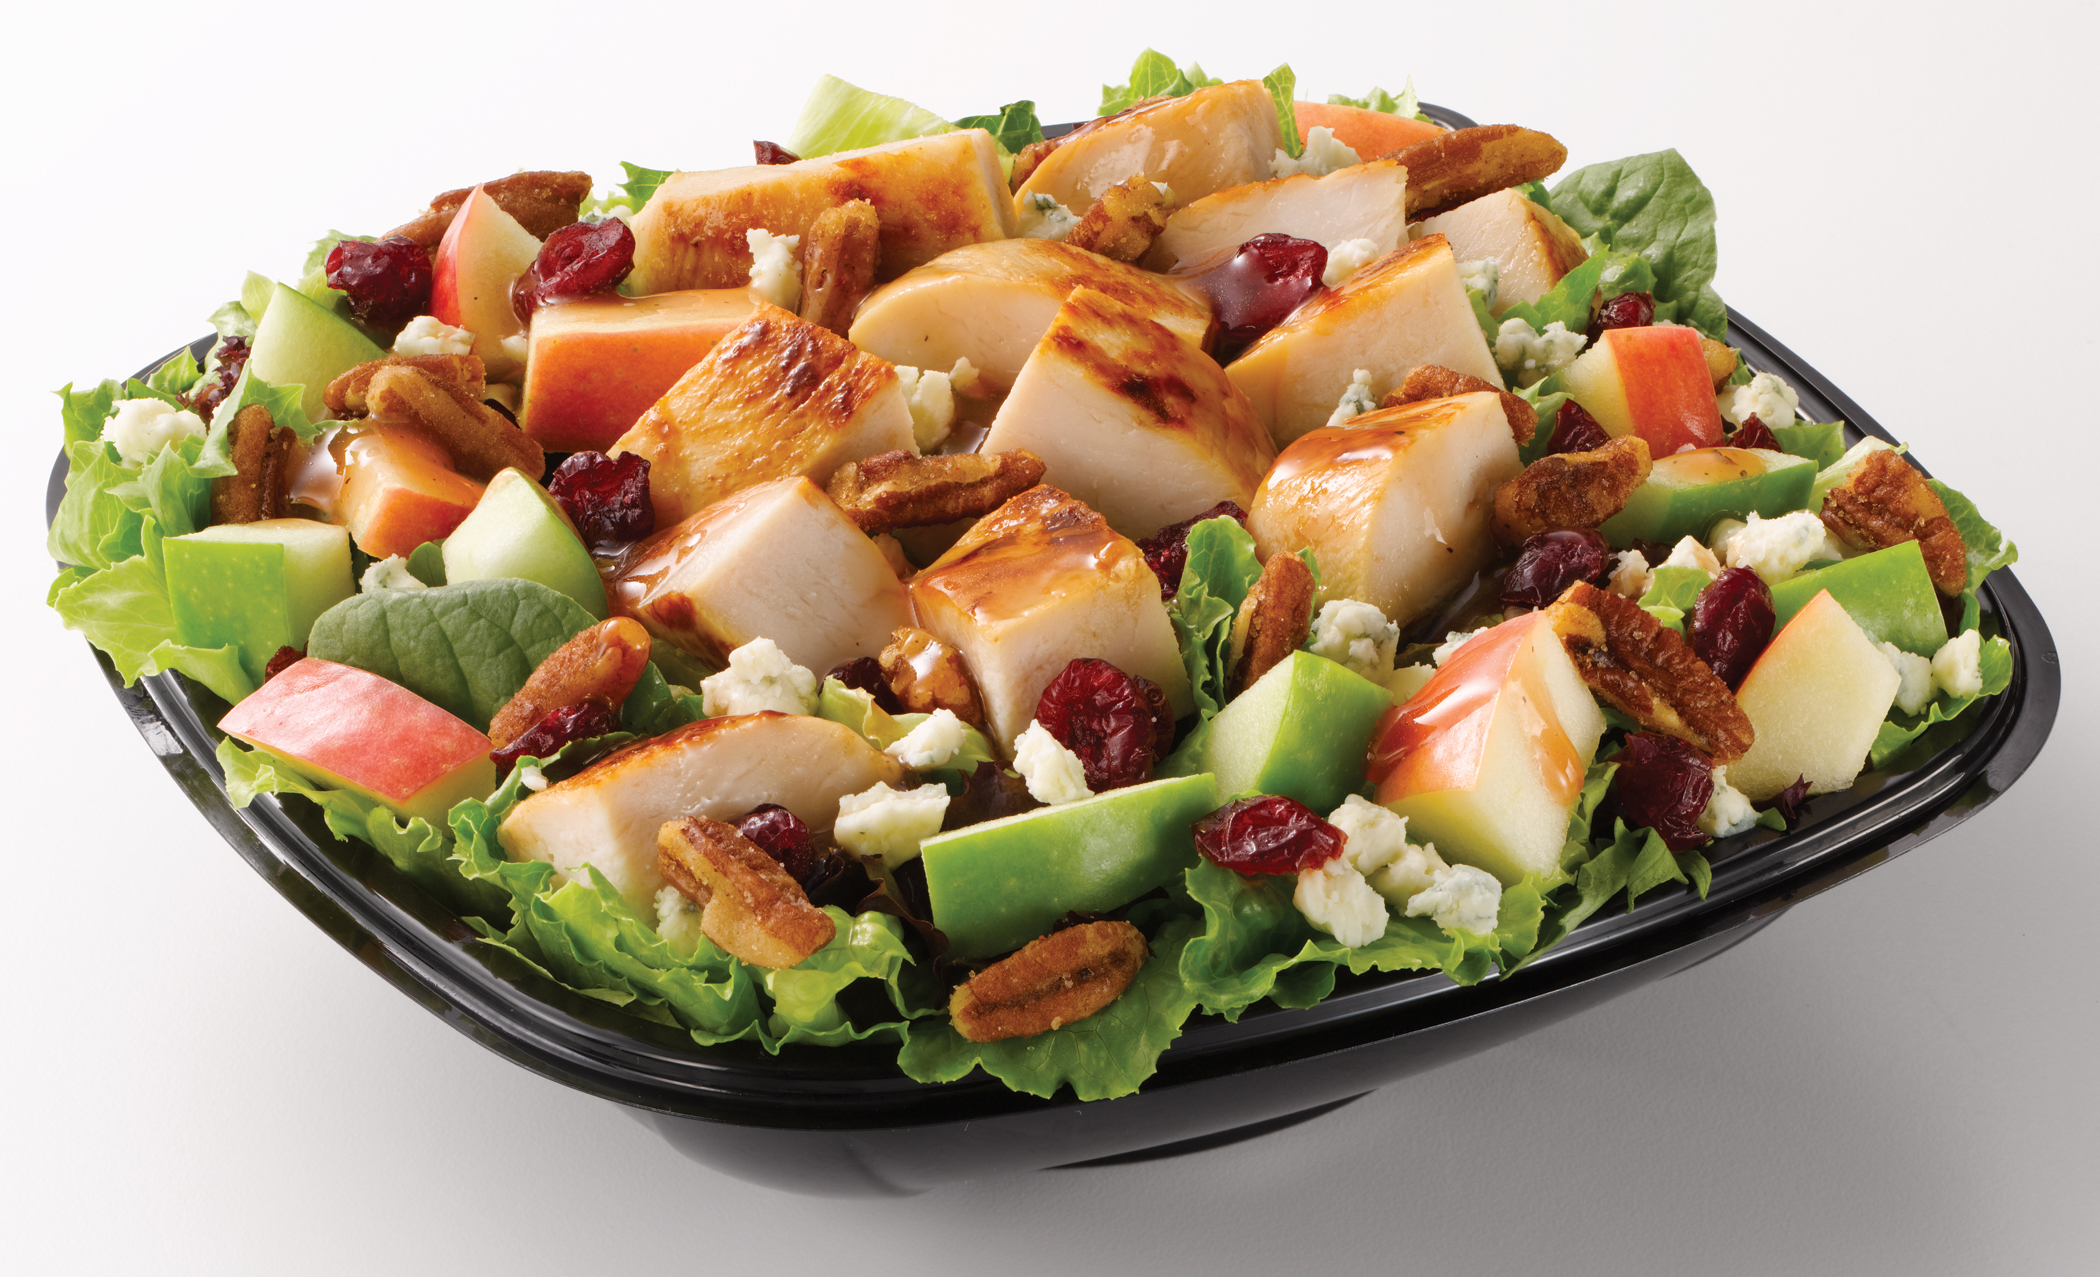 Wendy's Apple Pecan Chicken Salad. Photo courtesy of Wendy's.